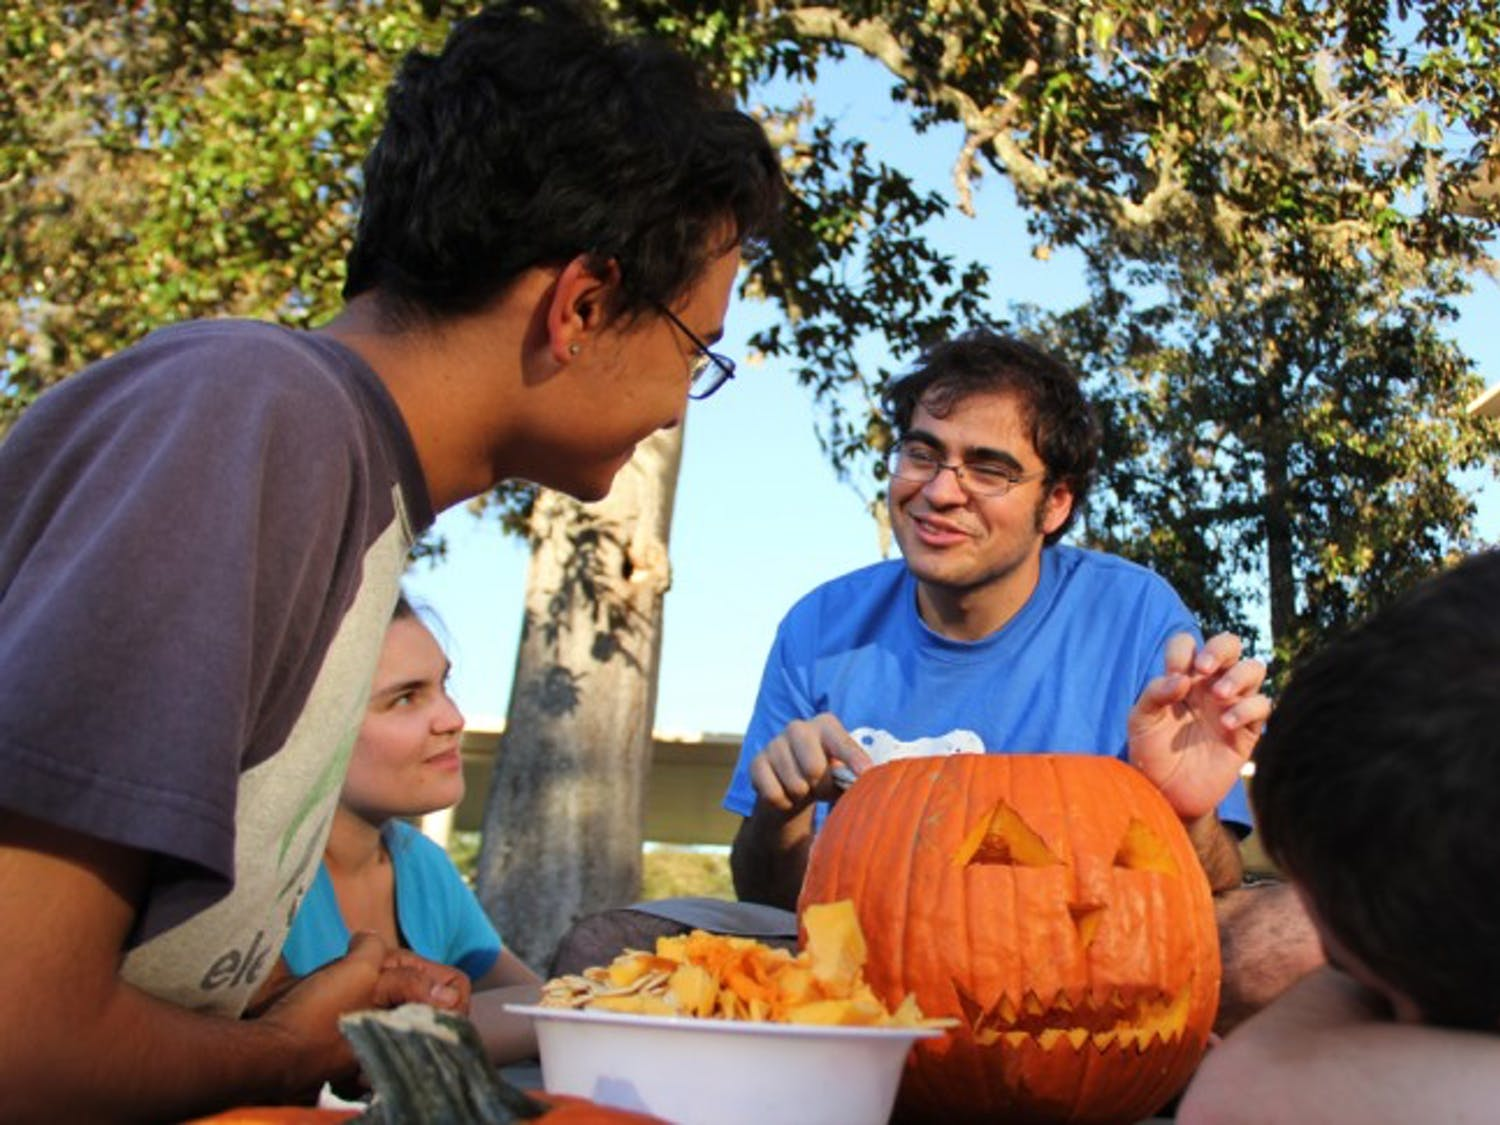 Michael Gonzalez, 20, shares his enthusiasm for carving pumpkins with his friends Ruben Quesada, 20, far left; Michelle Altemus, 20, left; and Marcus Lewis, 19, right; on Sunday afternoon.